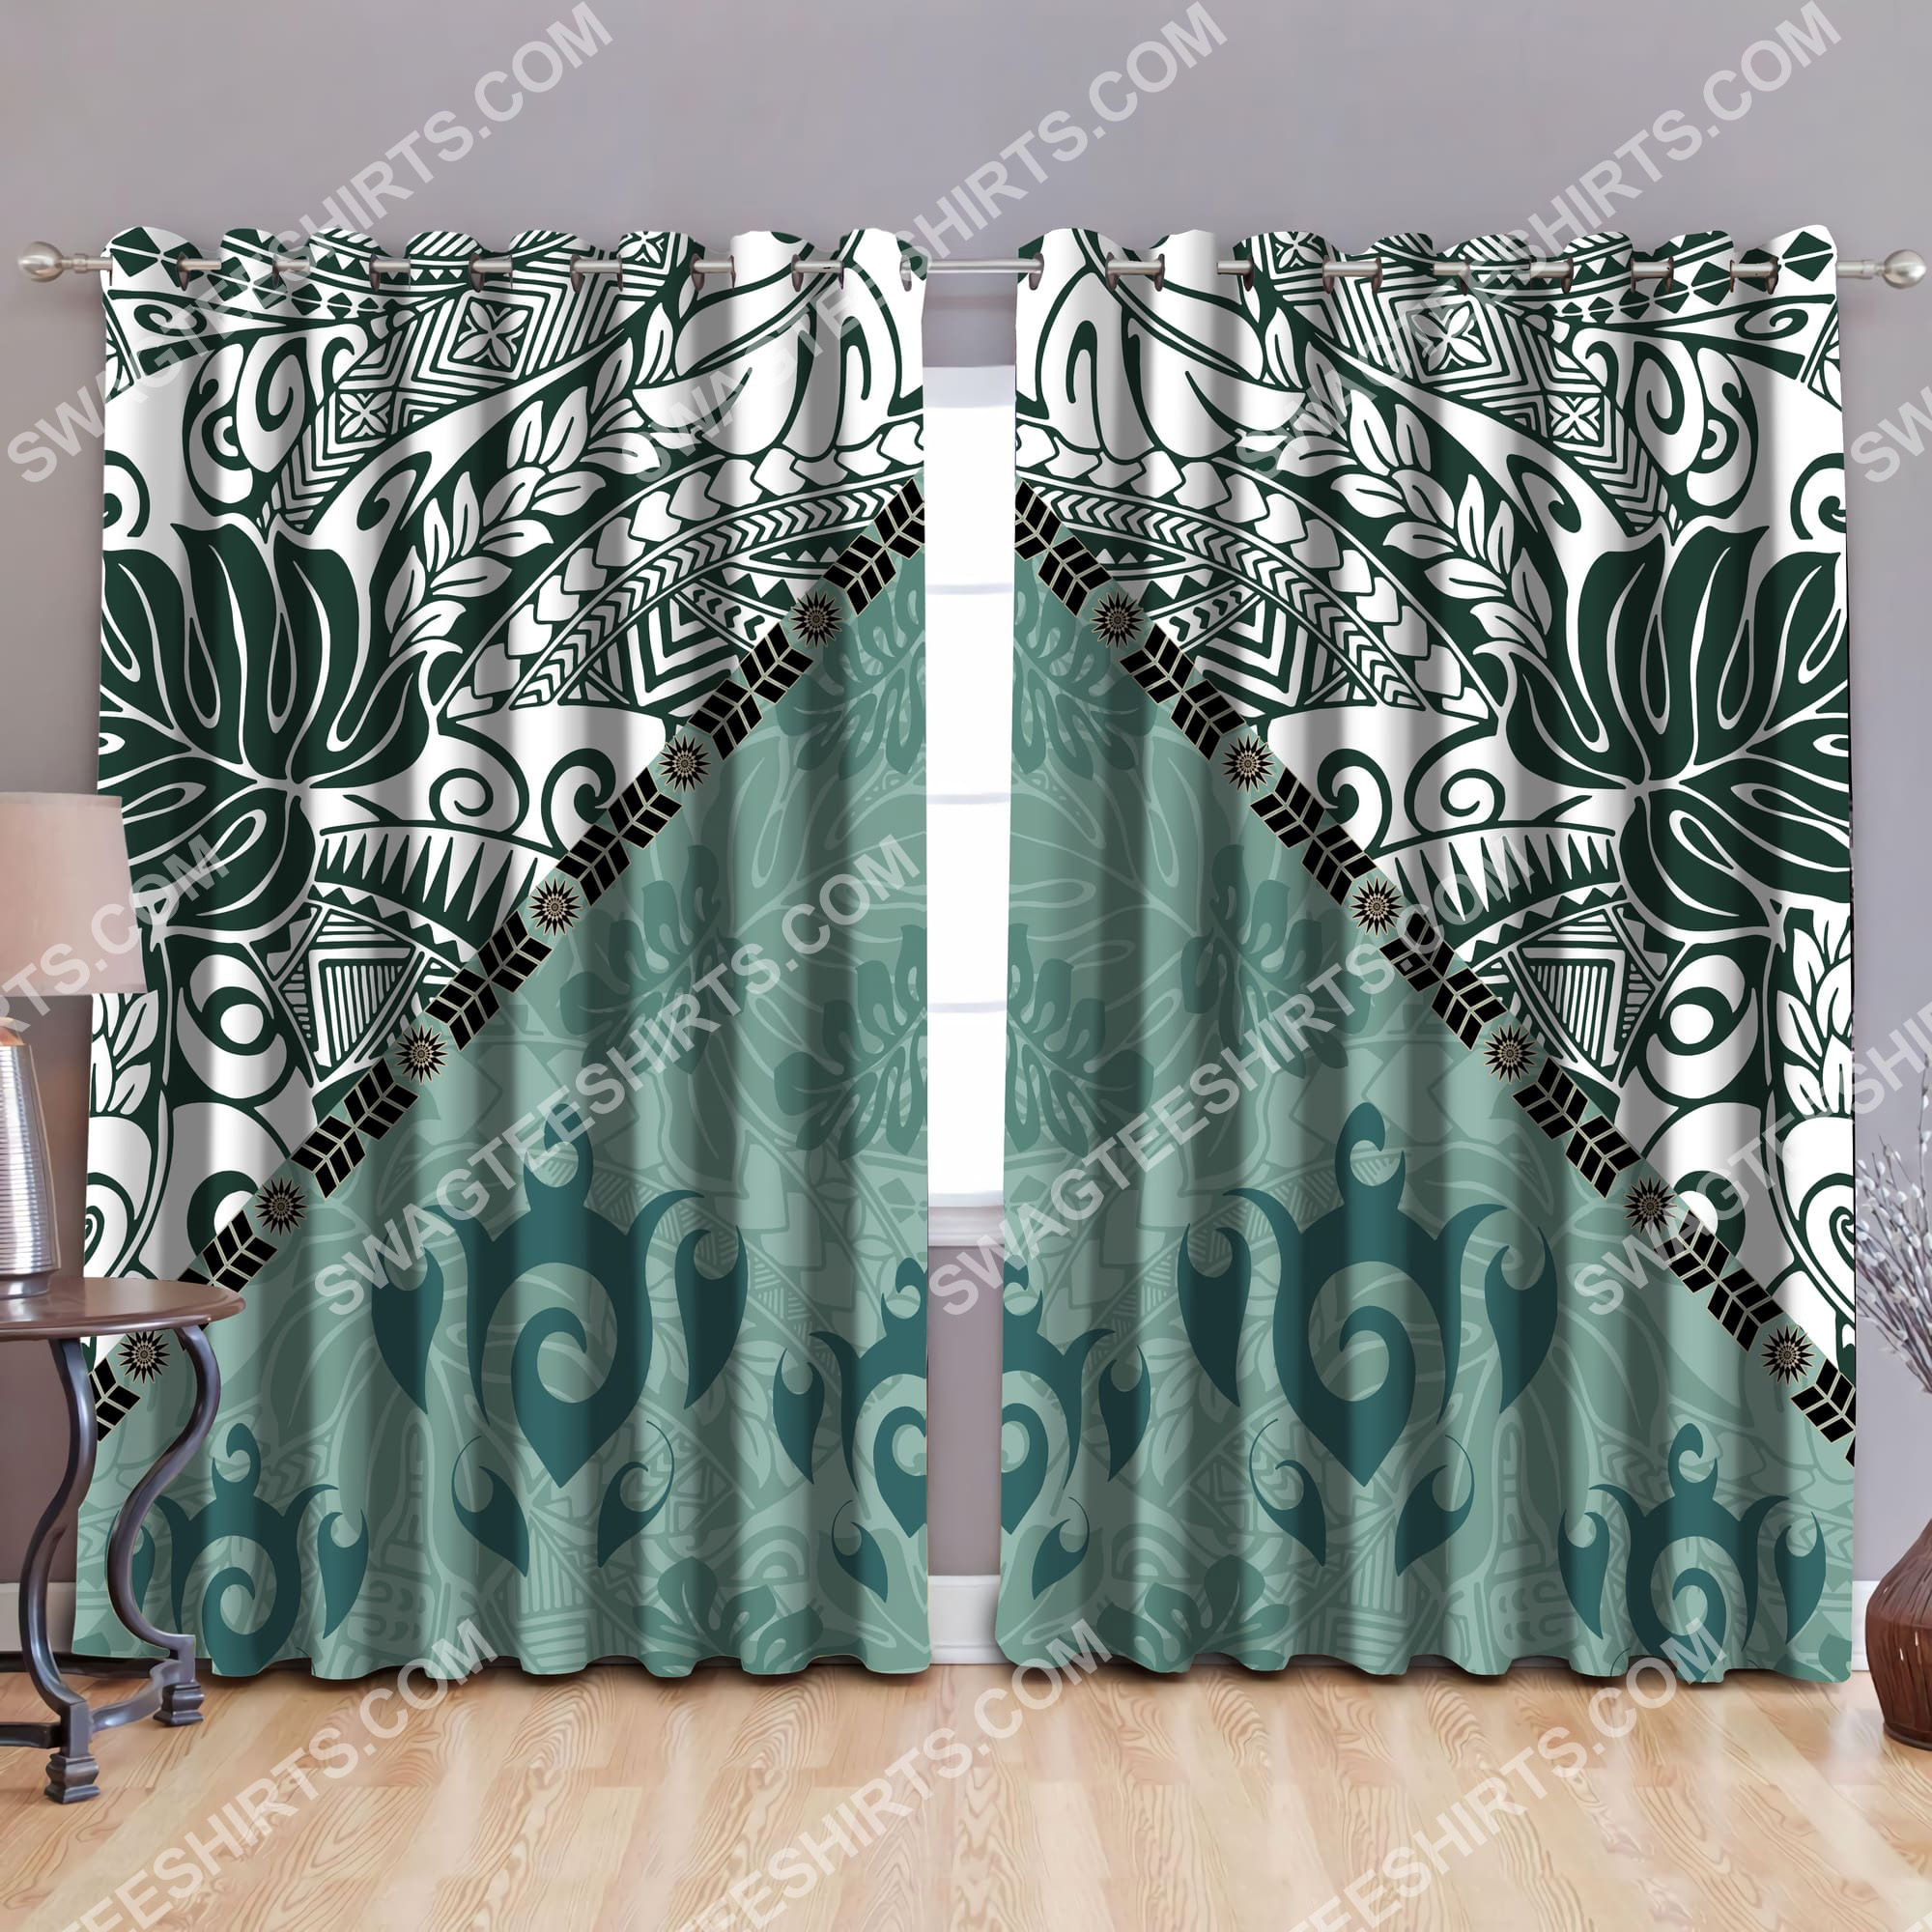 vintage leaves and turtles all over printed window curtains 2(1) - Copy